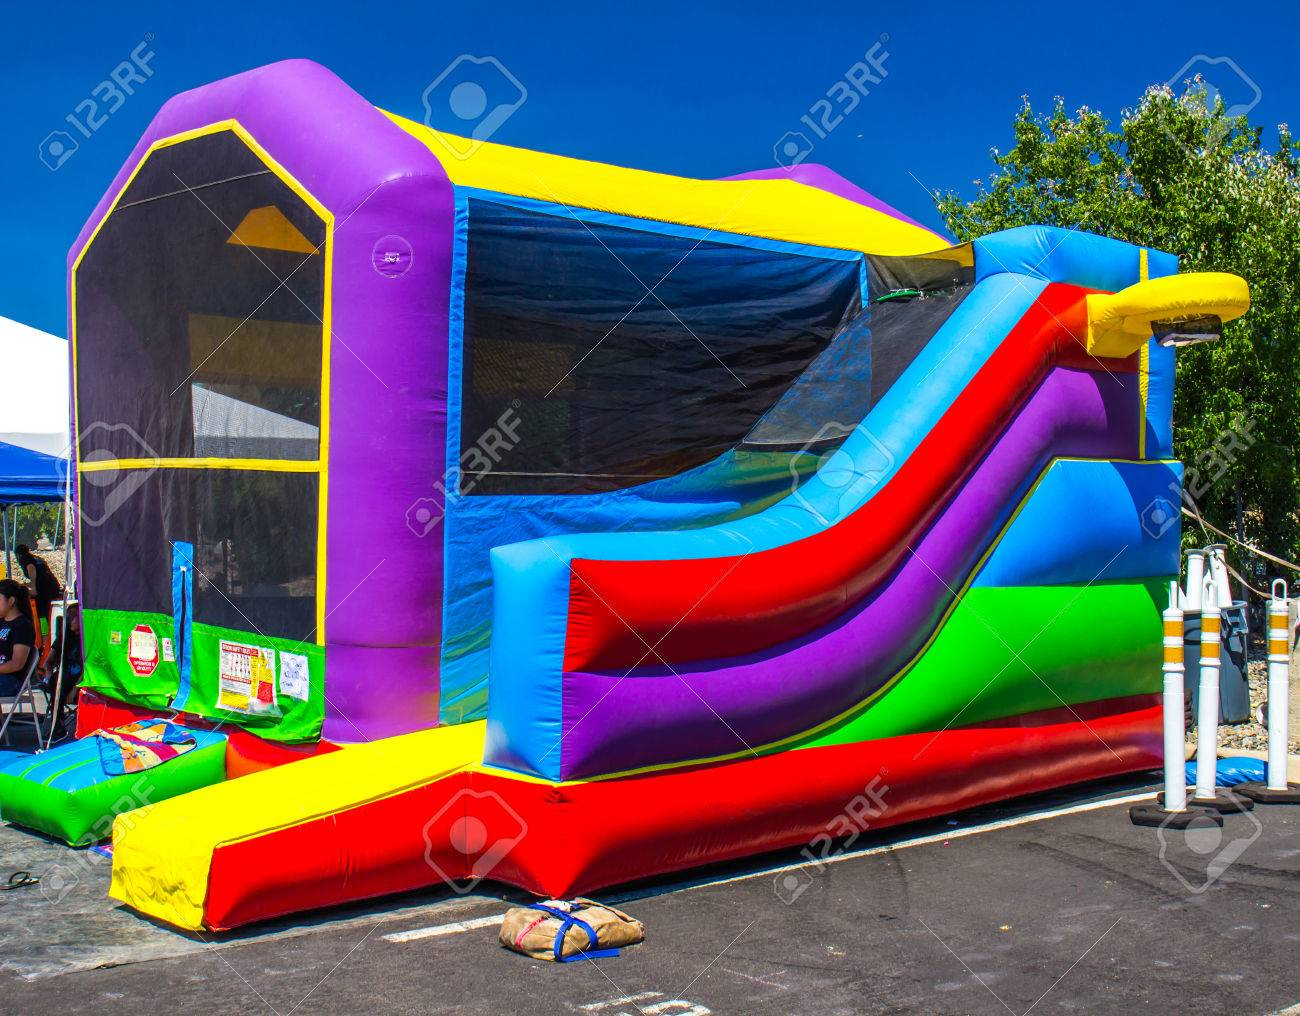 bounce ball house for kids stock photo picture and royalty free